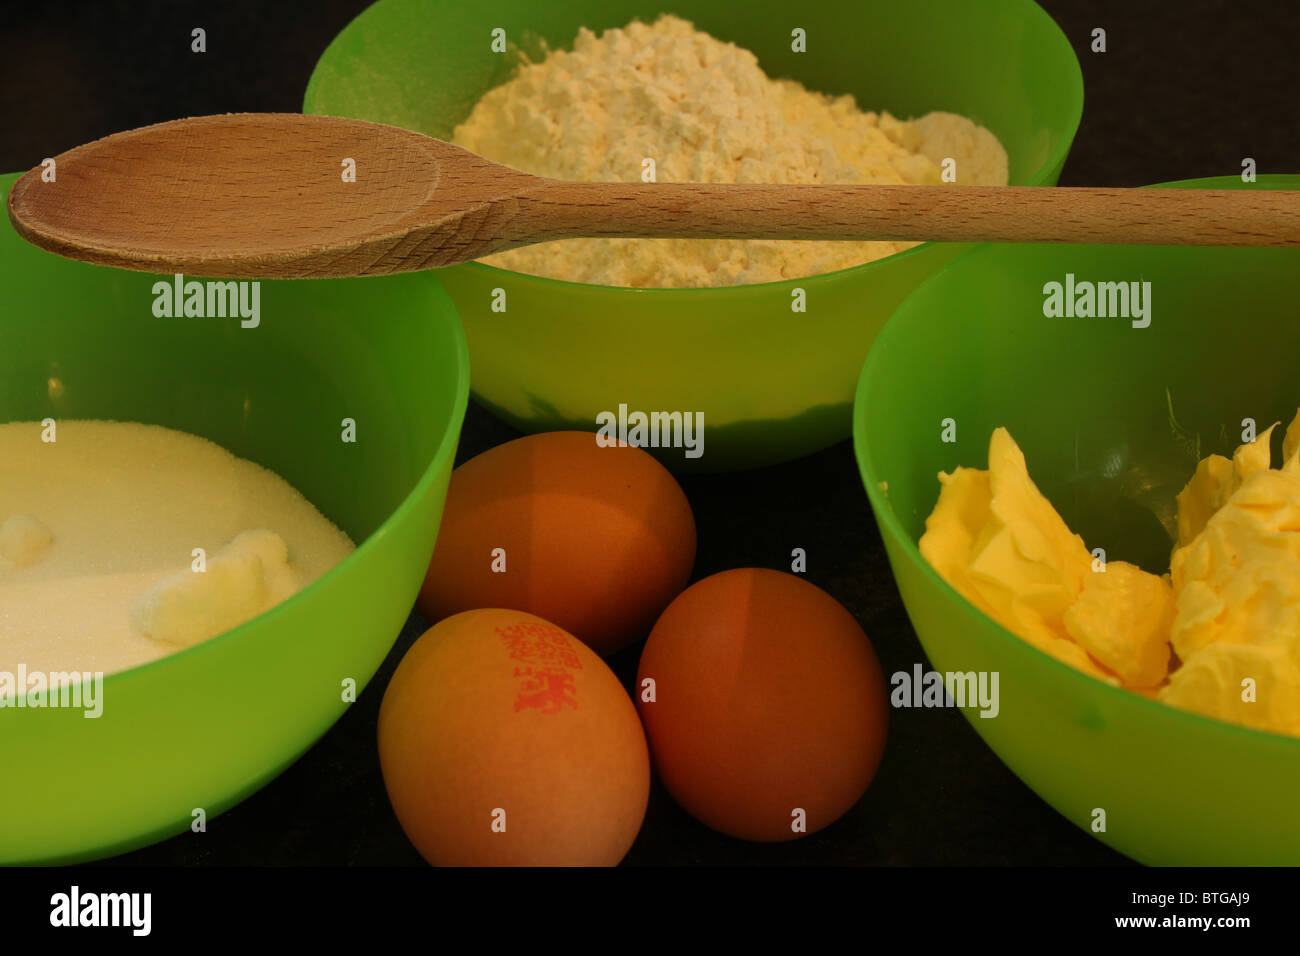 Cake ingredients; flour, sugar, butter and eggs with wooden spoon Stock Photo